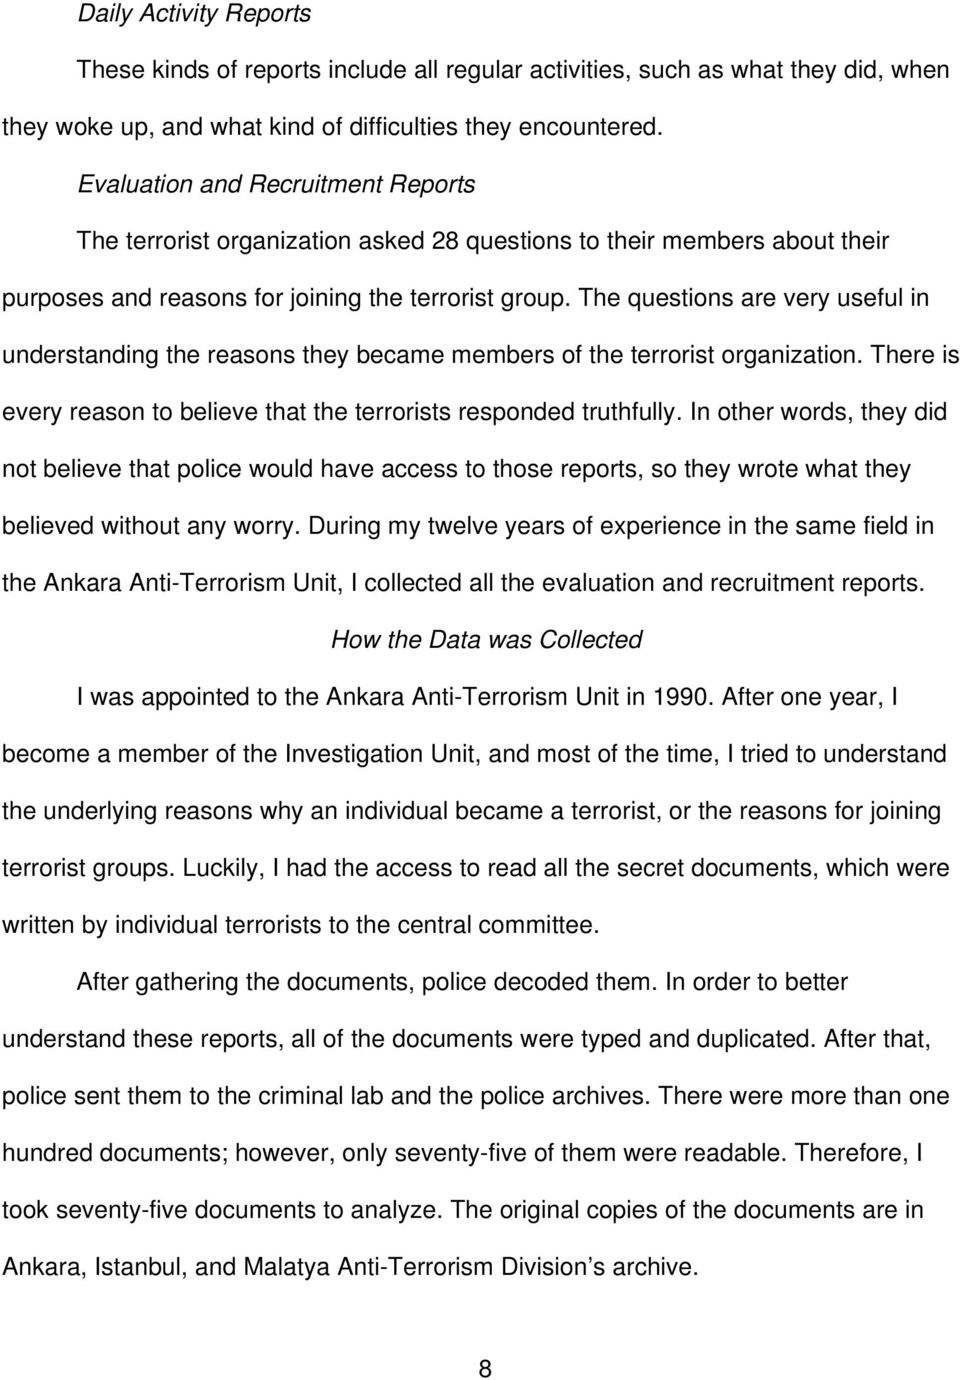 The questions are very useful in understanding the reasons they became members of the terrorist organization. There is every reason to believe that the terrorists responded truthfully.